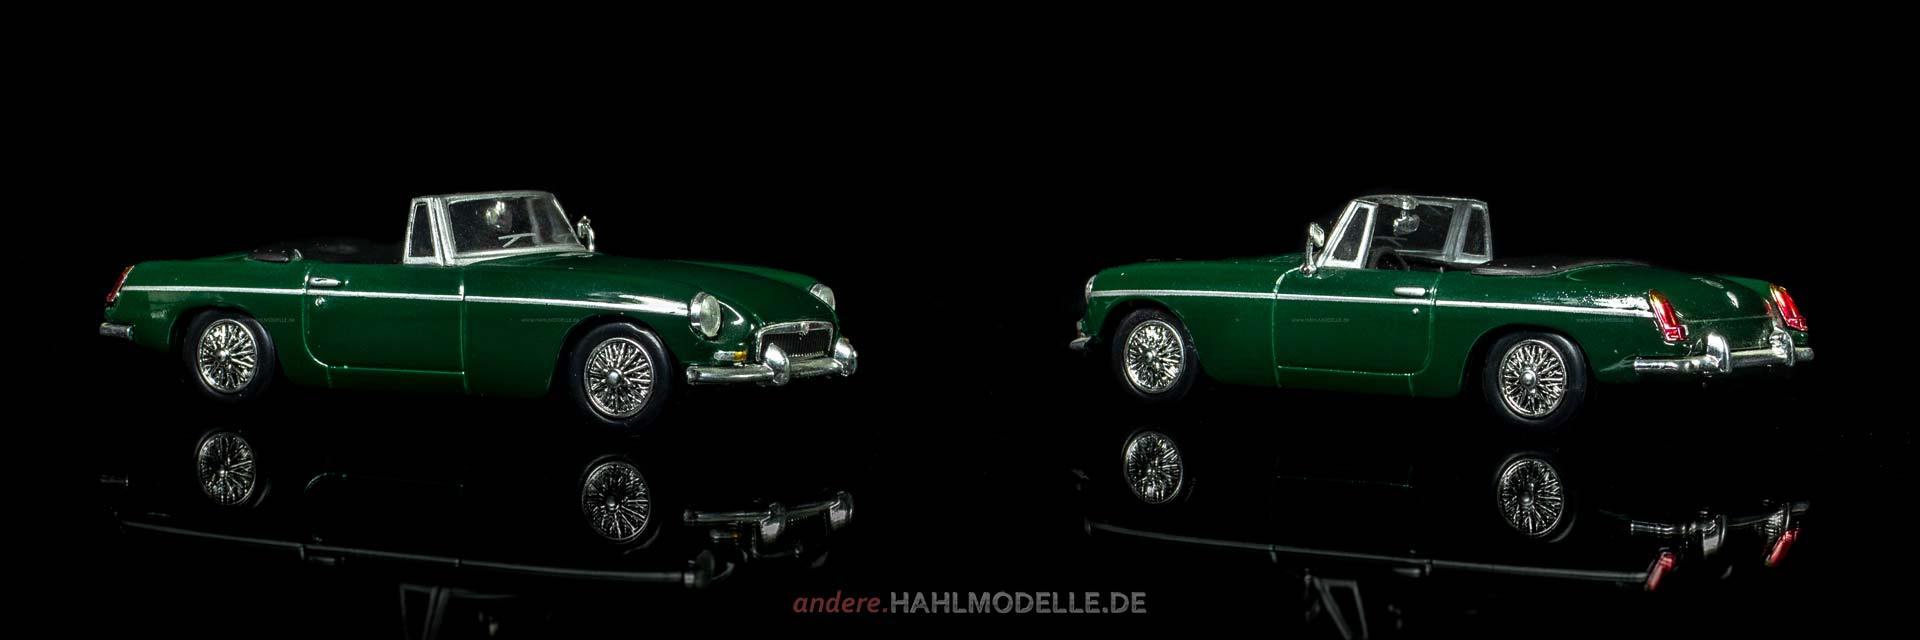 MGB | Roadster | Ixo (Del Prado Car Collection) | 1:43 | www.andere.hahlmodelle.de